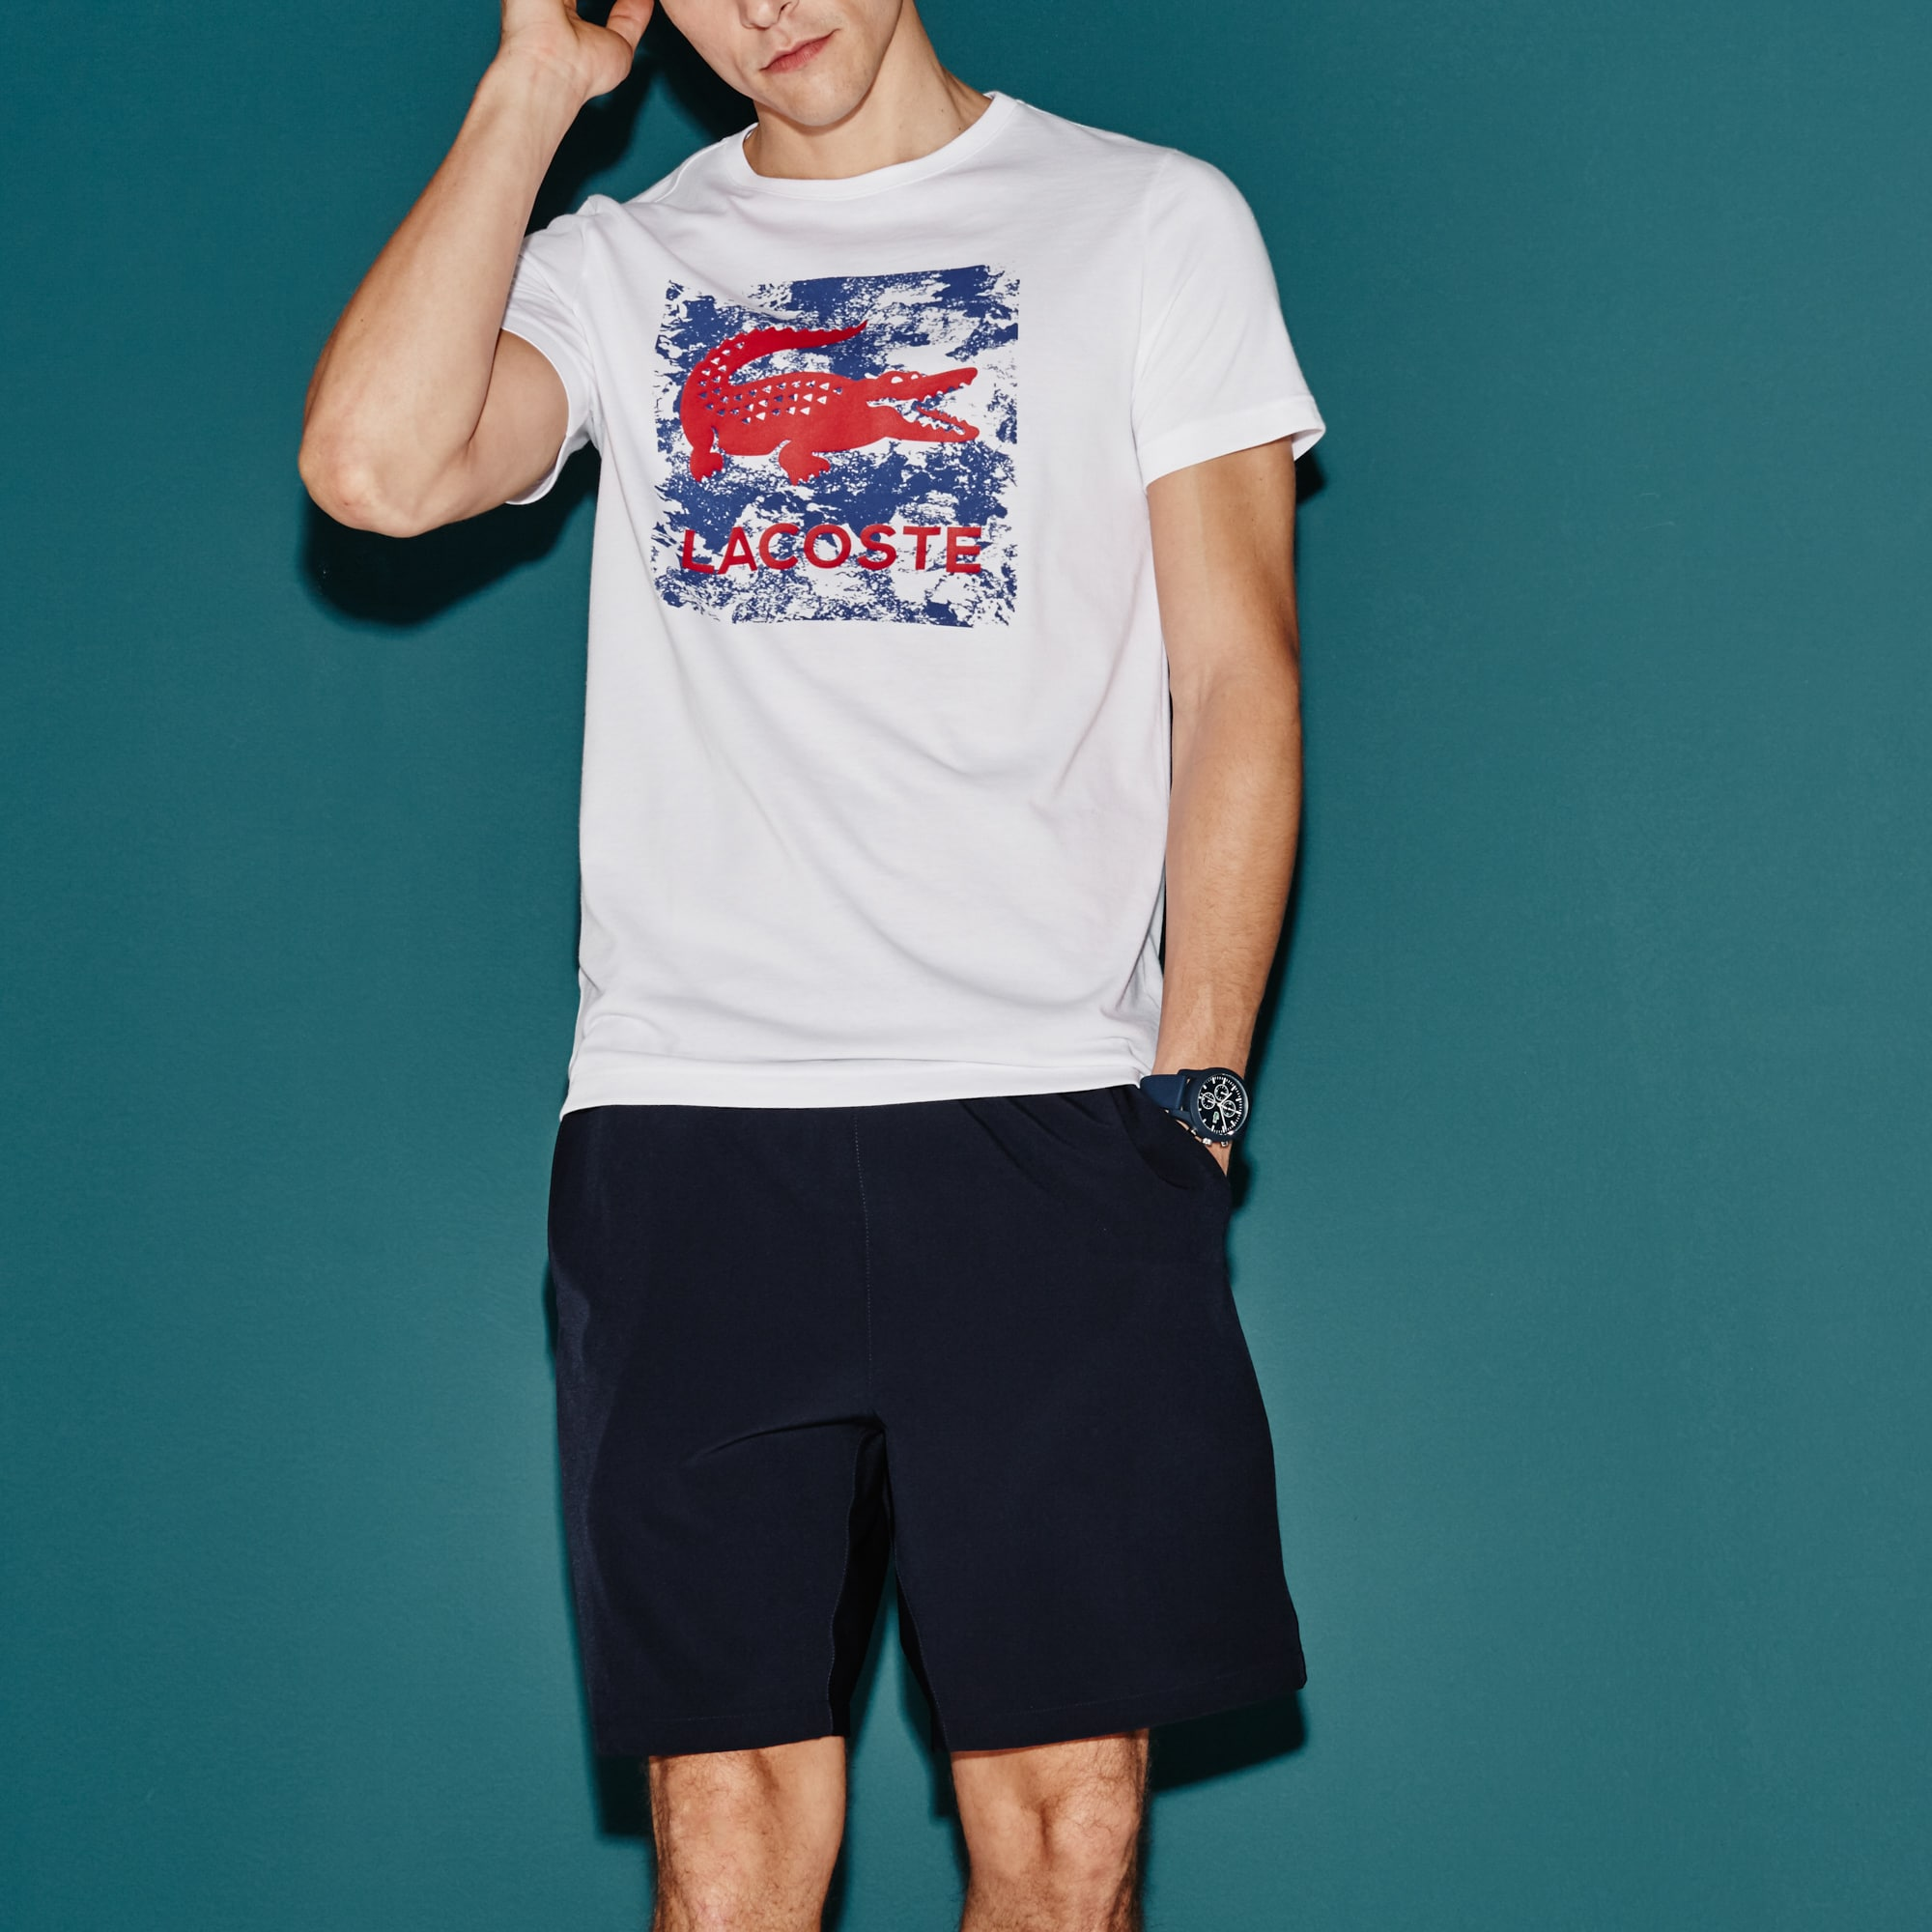 Men's  SPORT Tennis Print Technical Jersey T-shirt